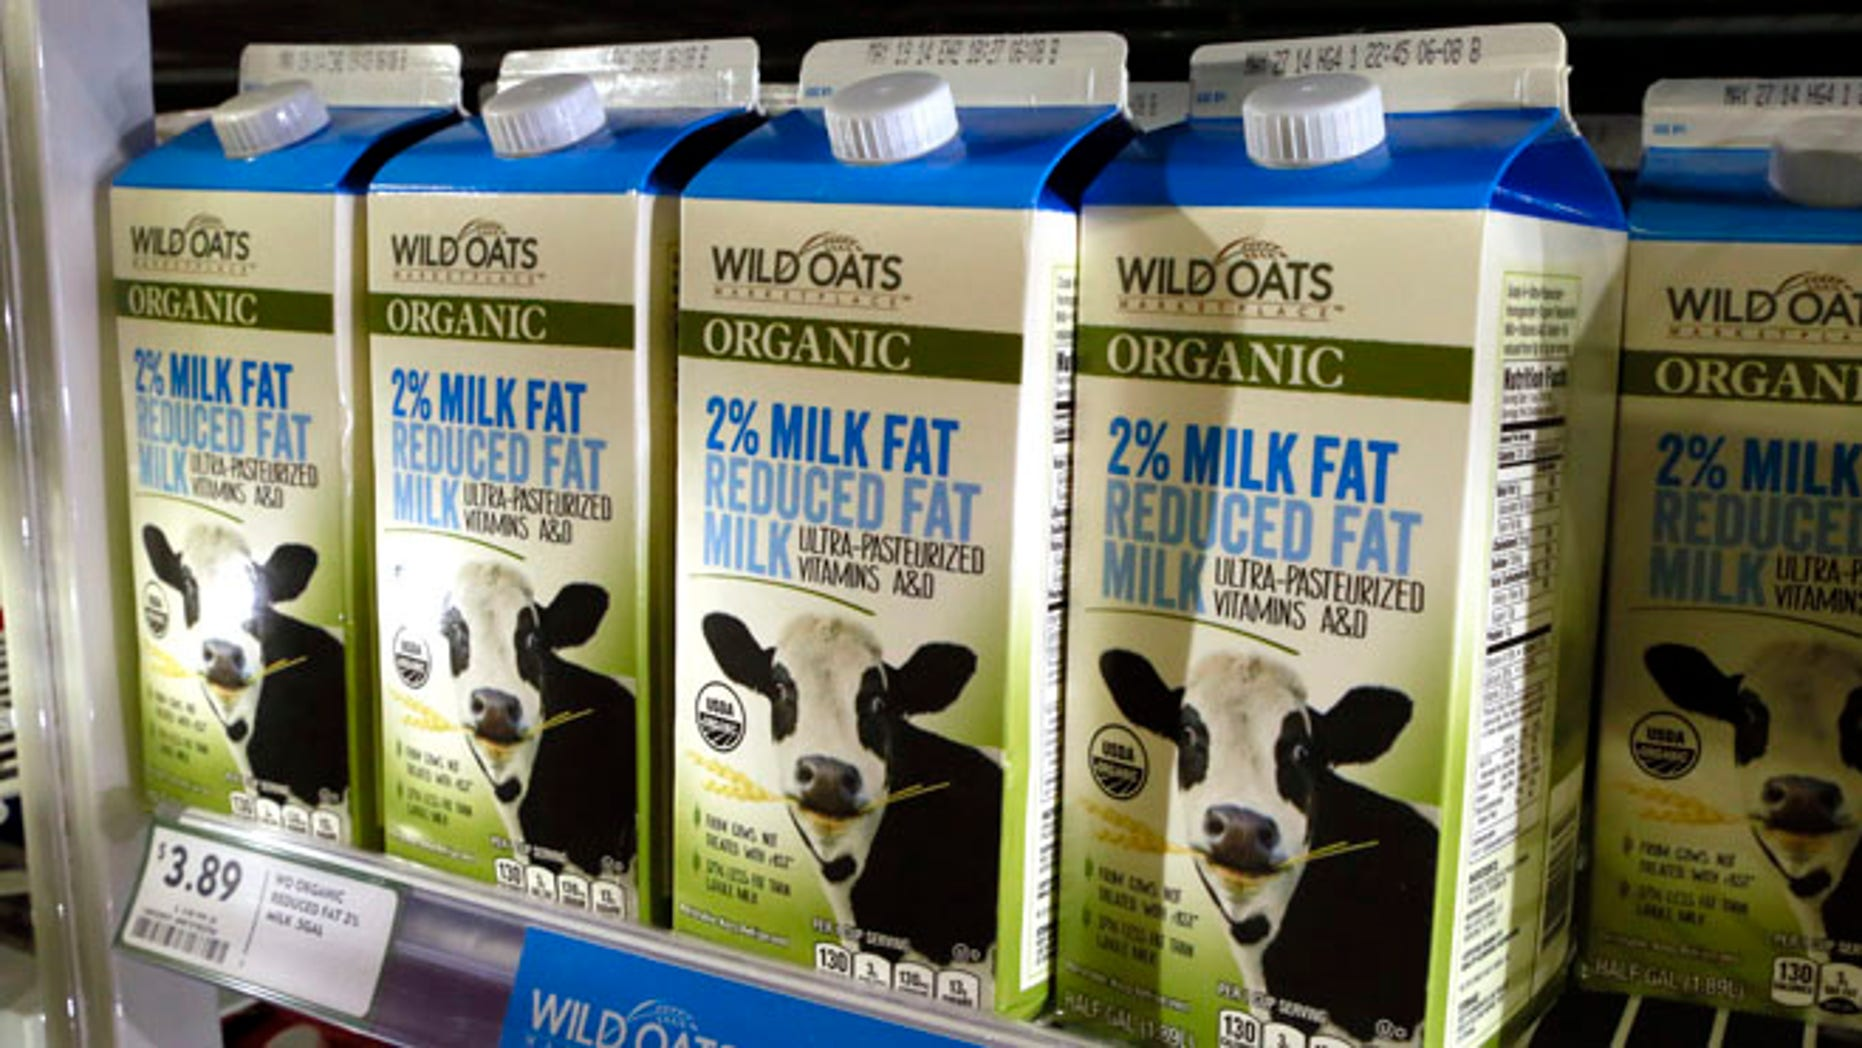 April 10, 2014: Cartons of milk.